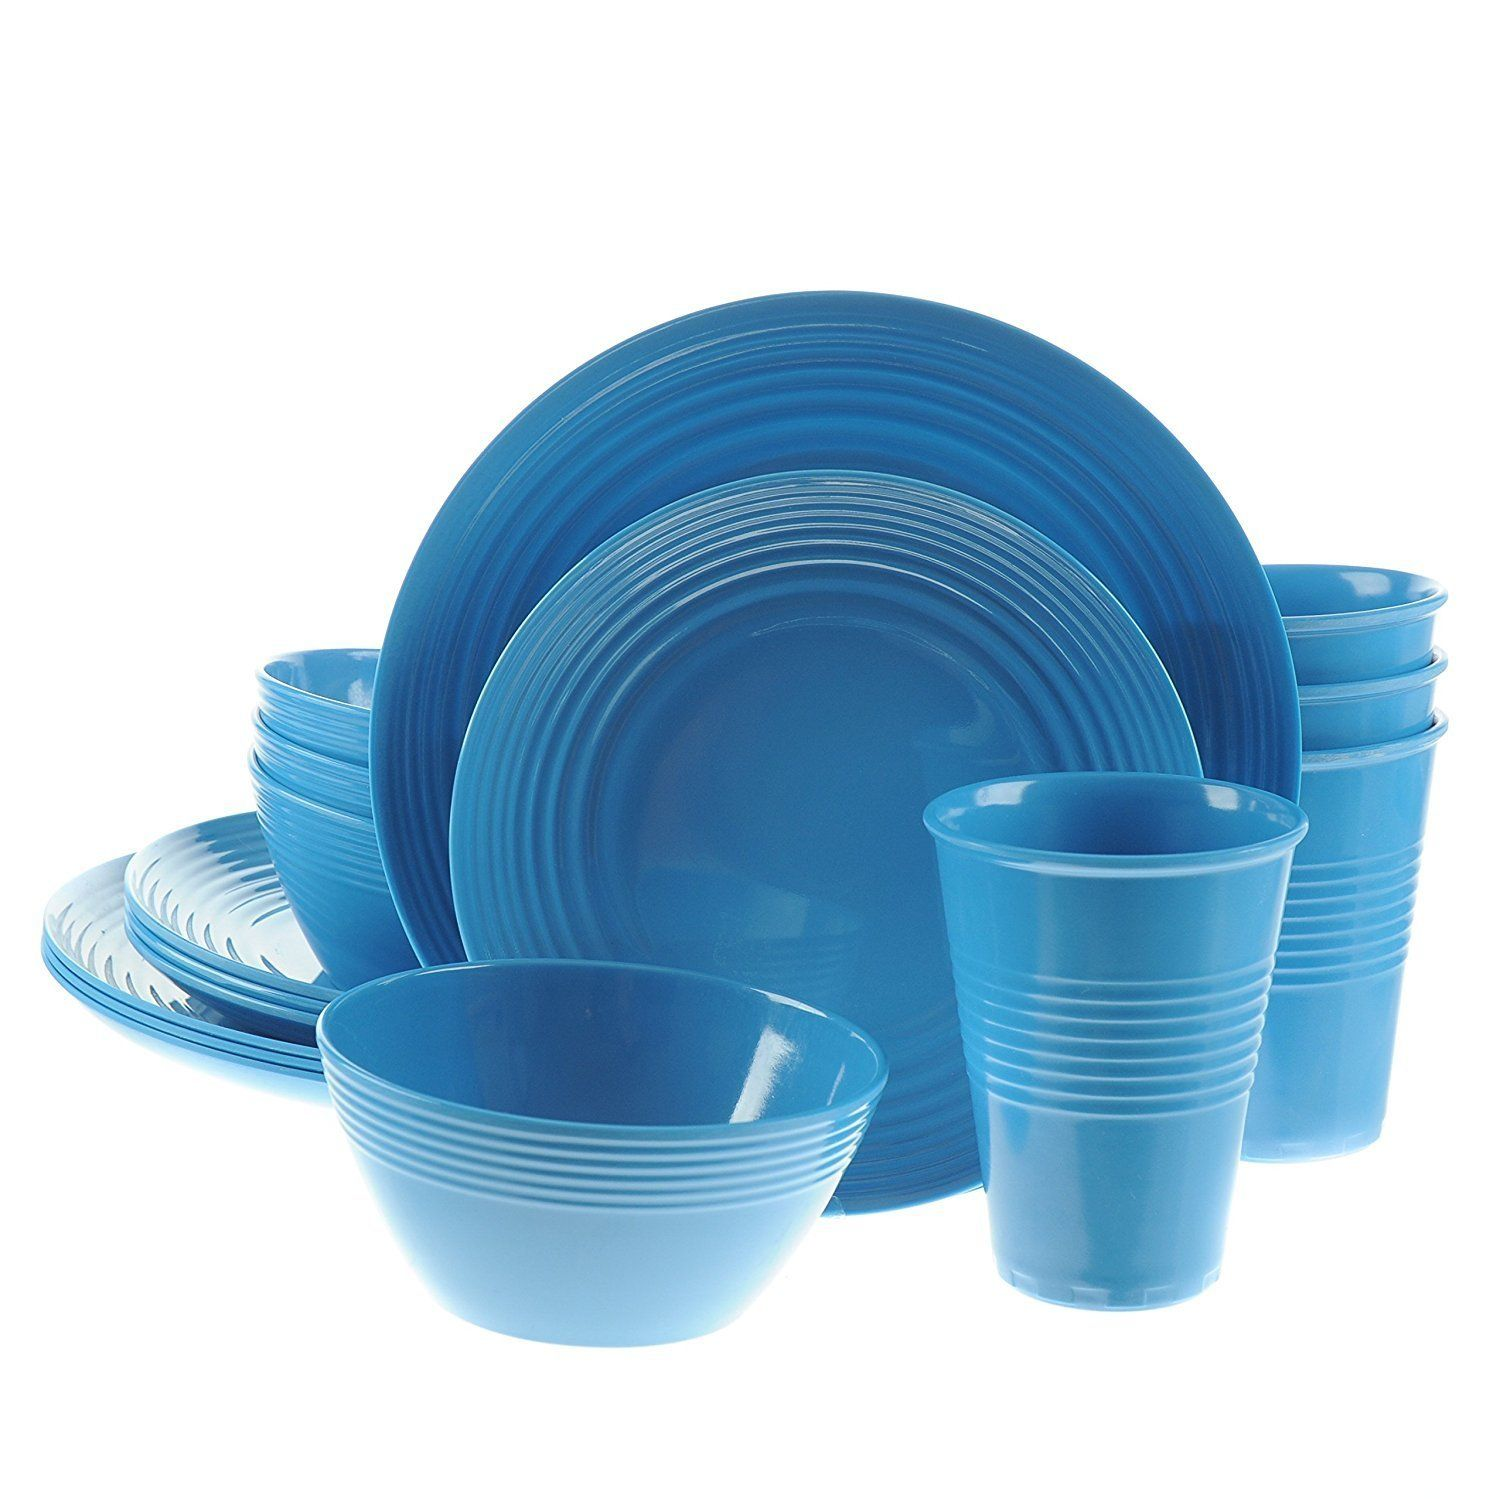 sc 1 st  HuffPost & 8 Durable Dinnerware Sets That Wonu0027t Break | HuffPost